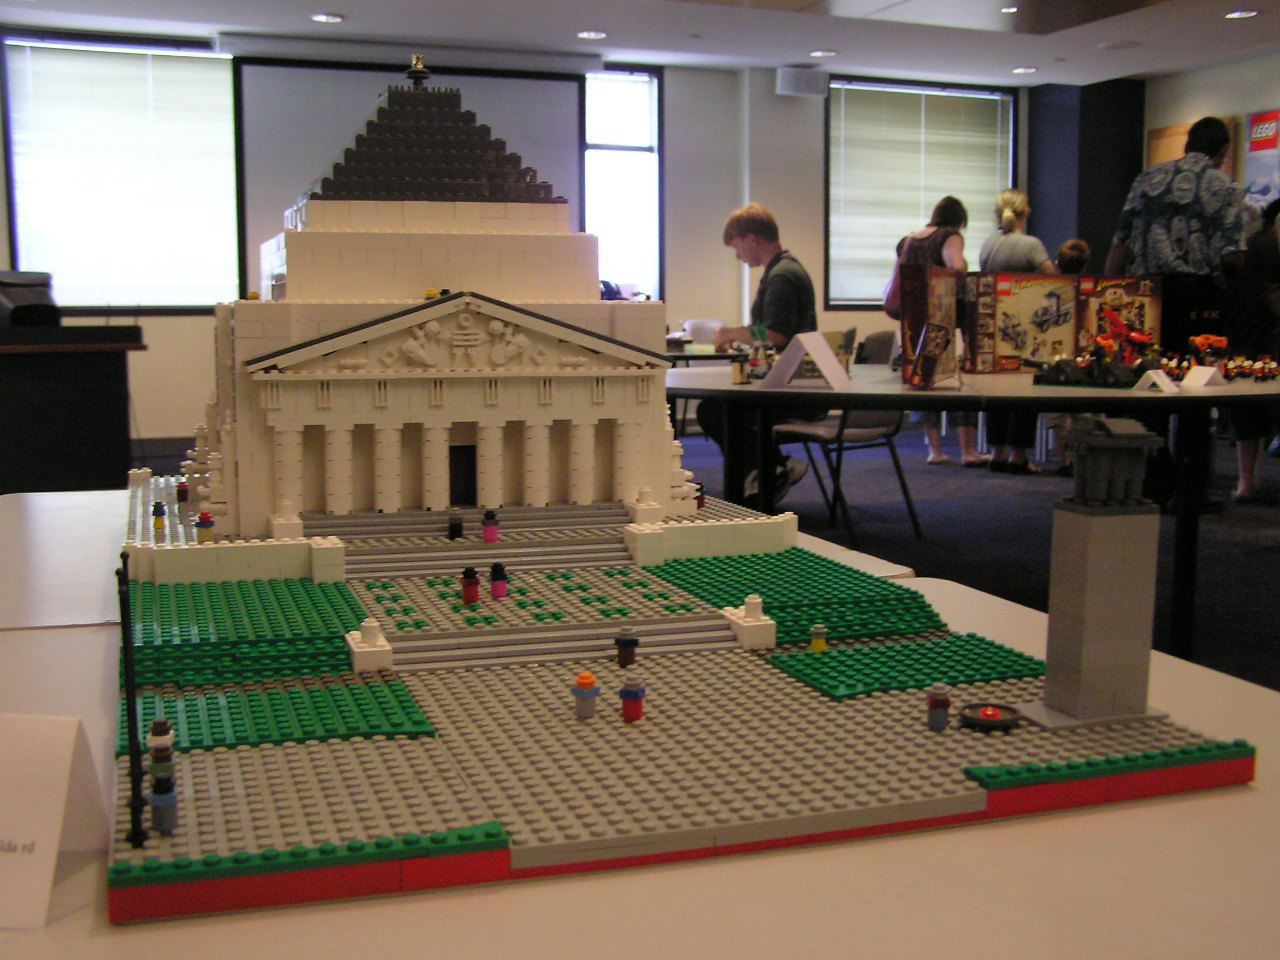 brickvention_084.jpg